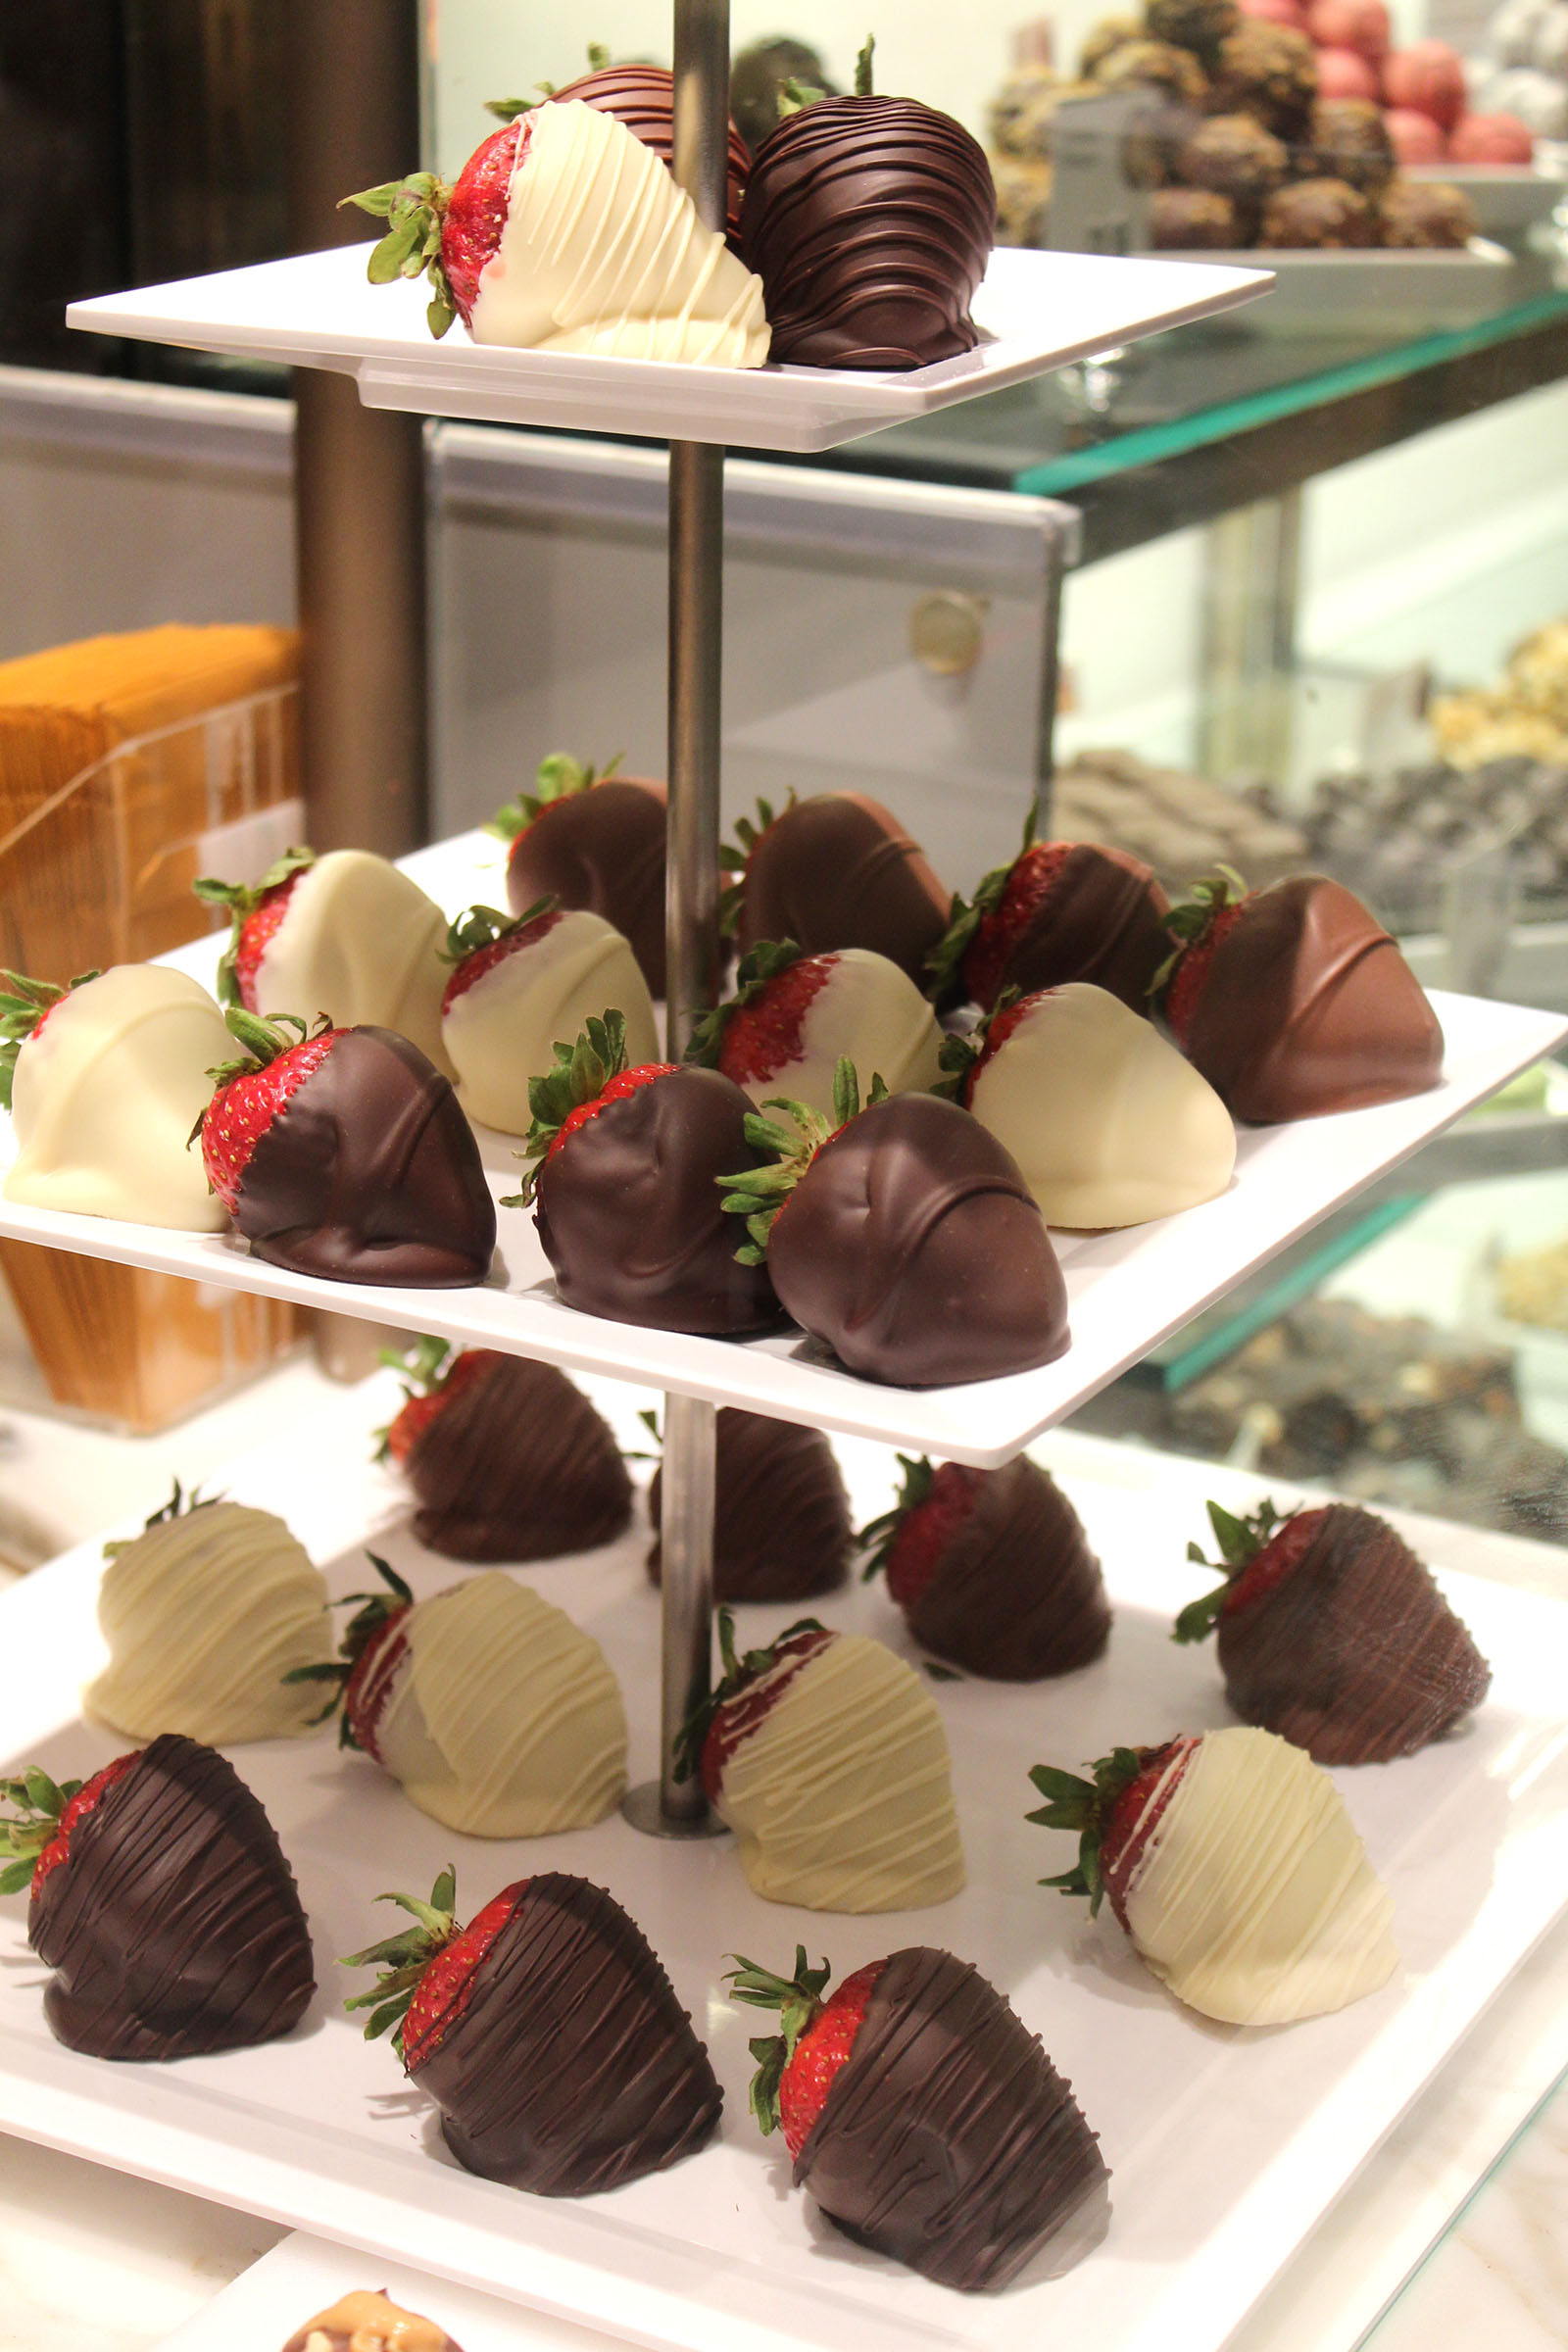 GODIVA chocolate strawberries